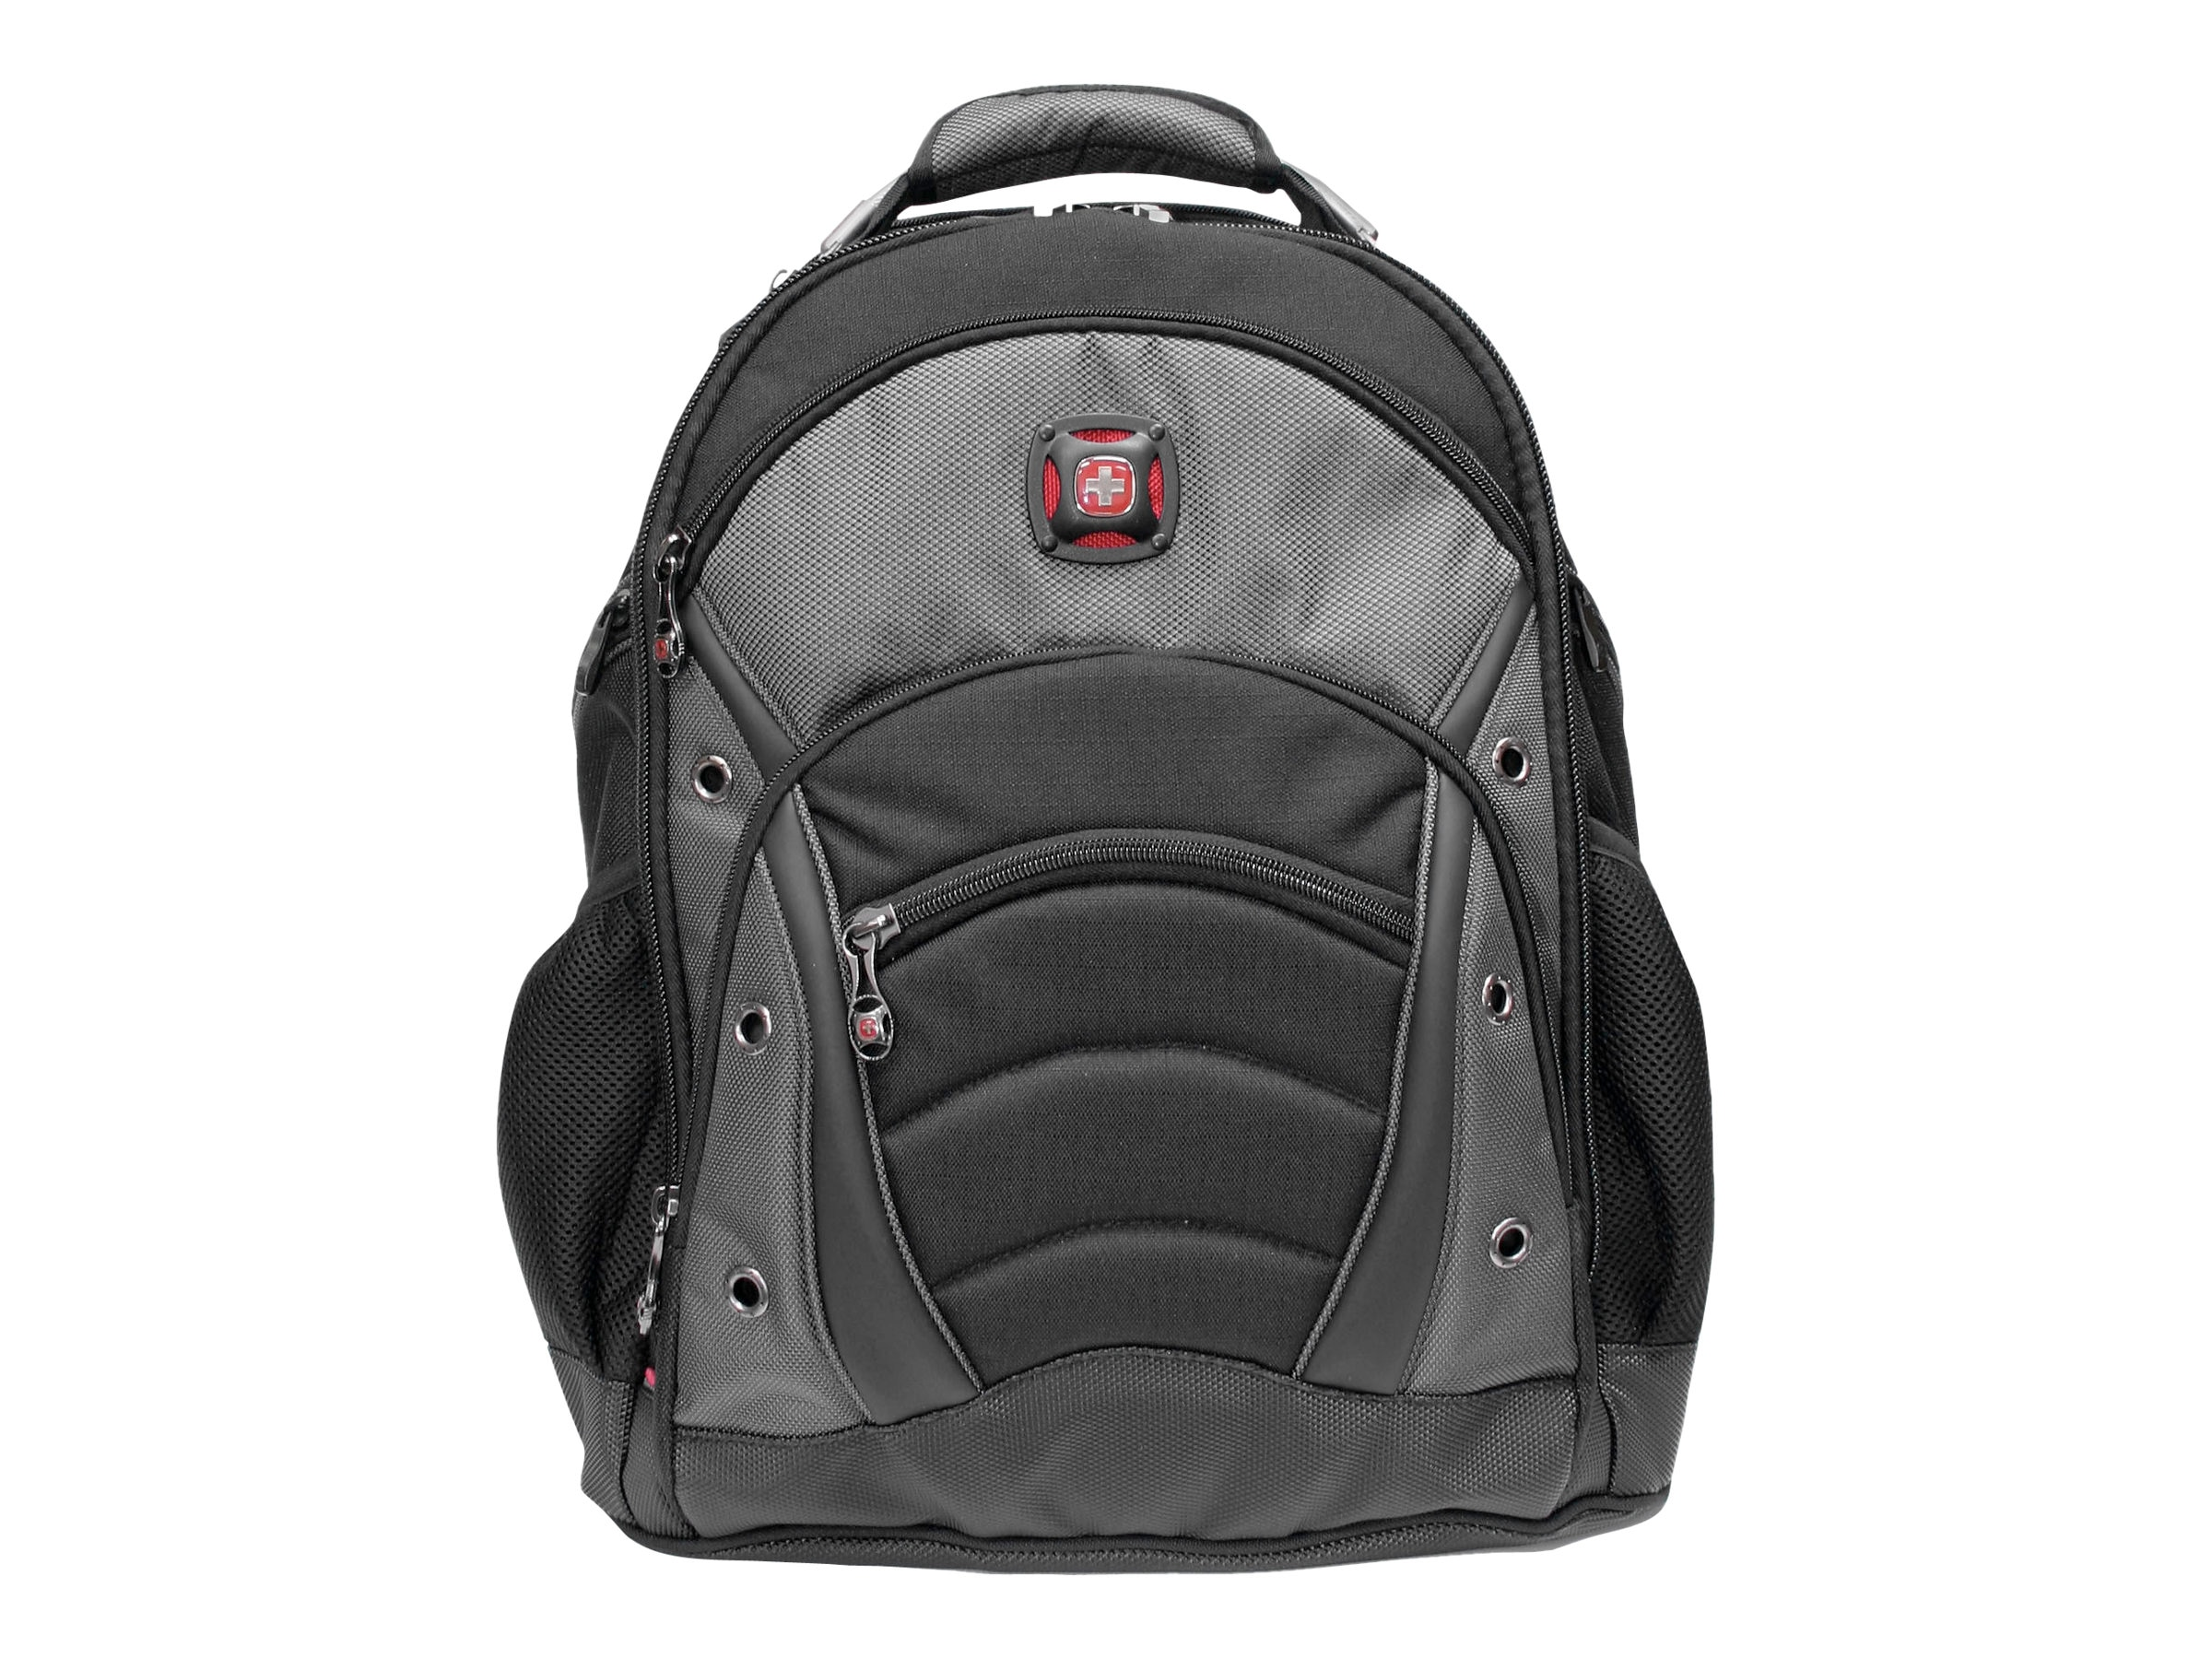 Wenger Swiss Army Synergy Backpack, Poly Nylon, Gray, Fits Most 15.6 Screens, GA-7305-14F00, 6039651, Carrying Cases - Notebook